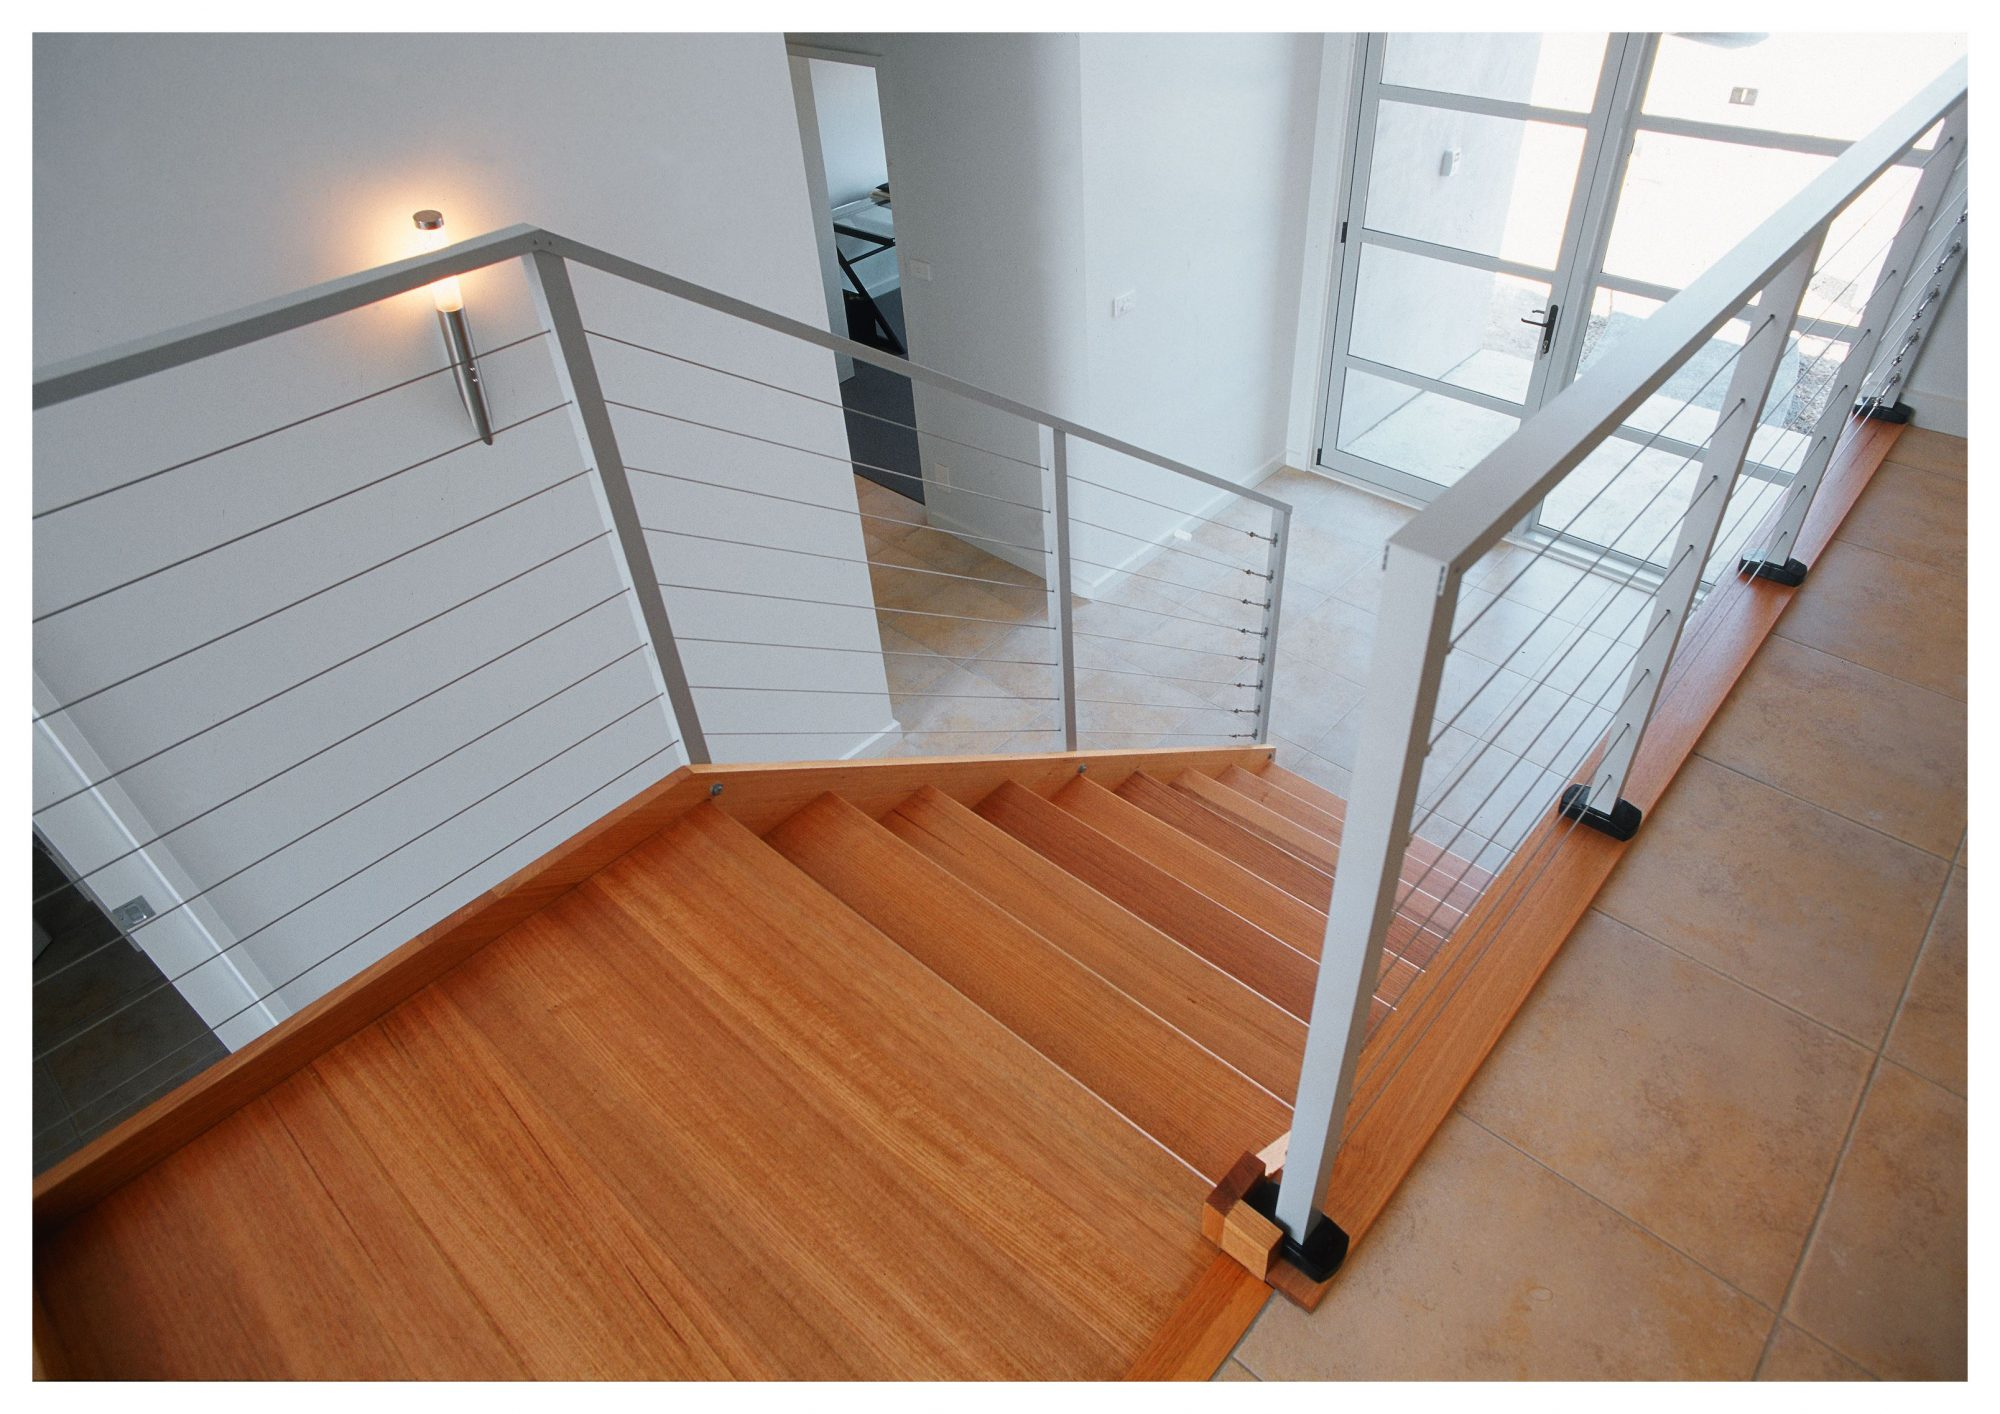 Protect and revitalise timber flooring with Sikkens wood stains